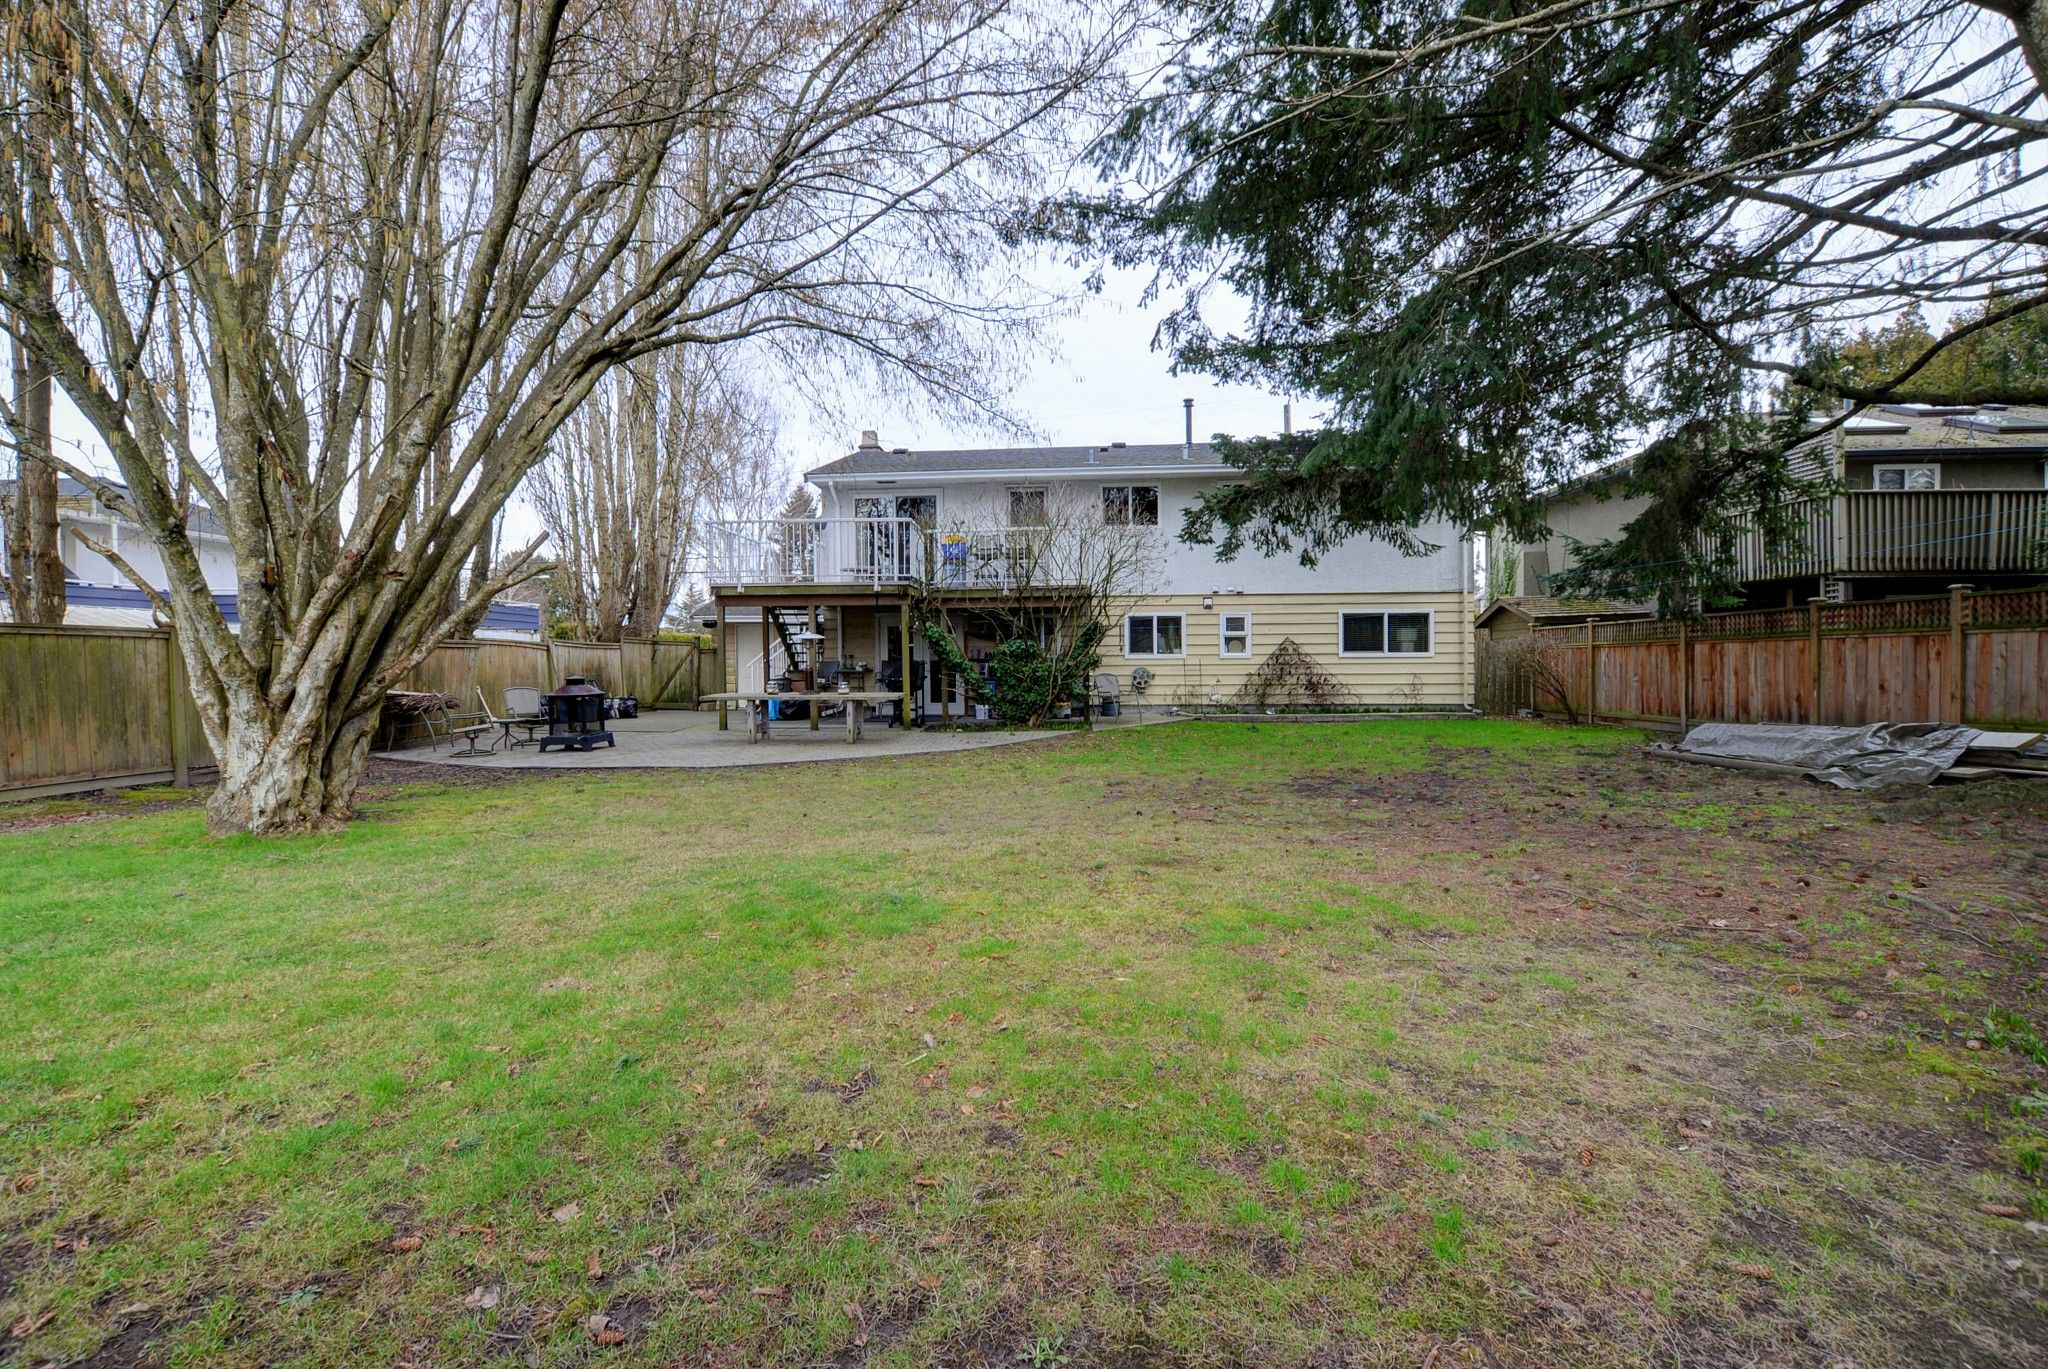 Photo 22: Photos: 5166 44 Avenue in Delta: Ladner Elementary House for sale (Ladner)  : MLS®# R2239309